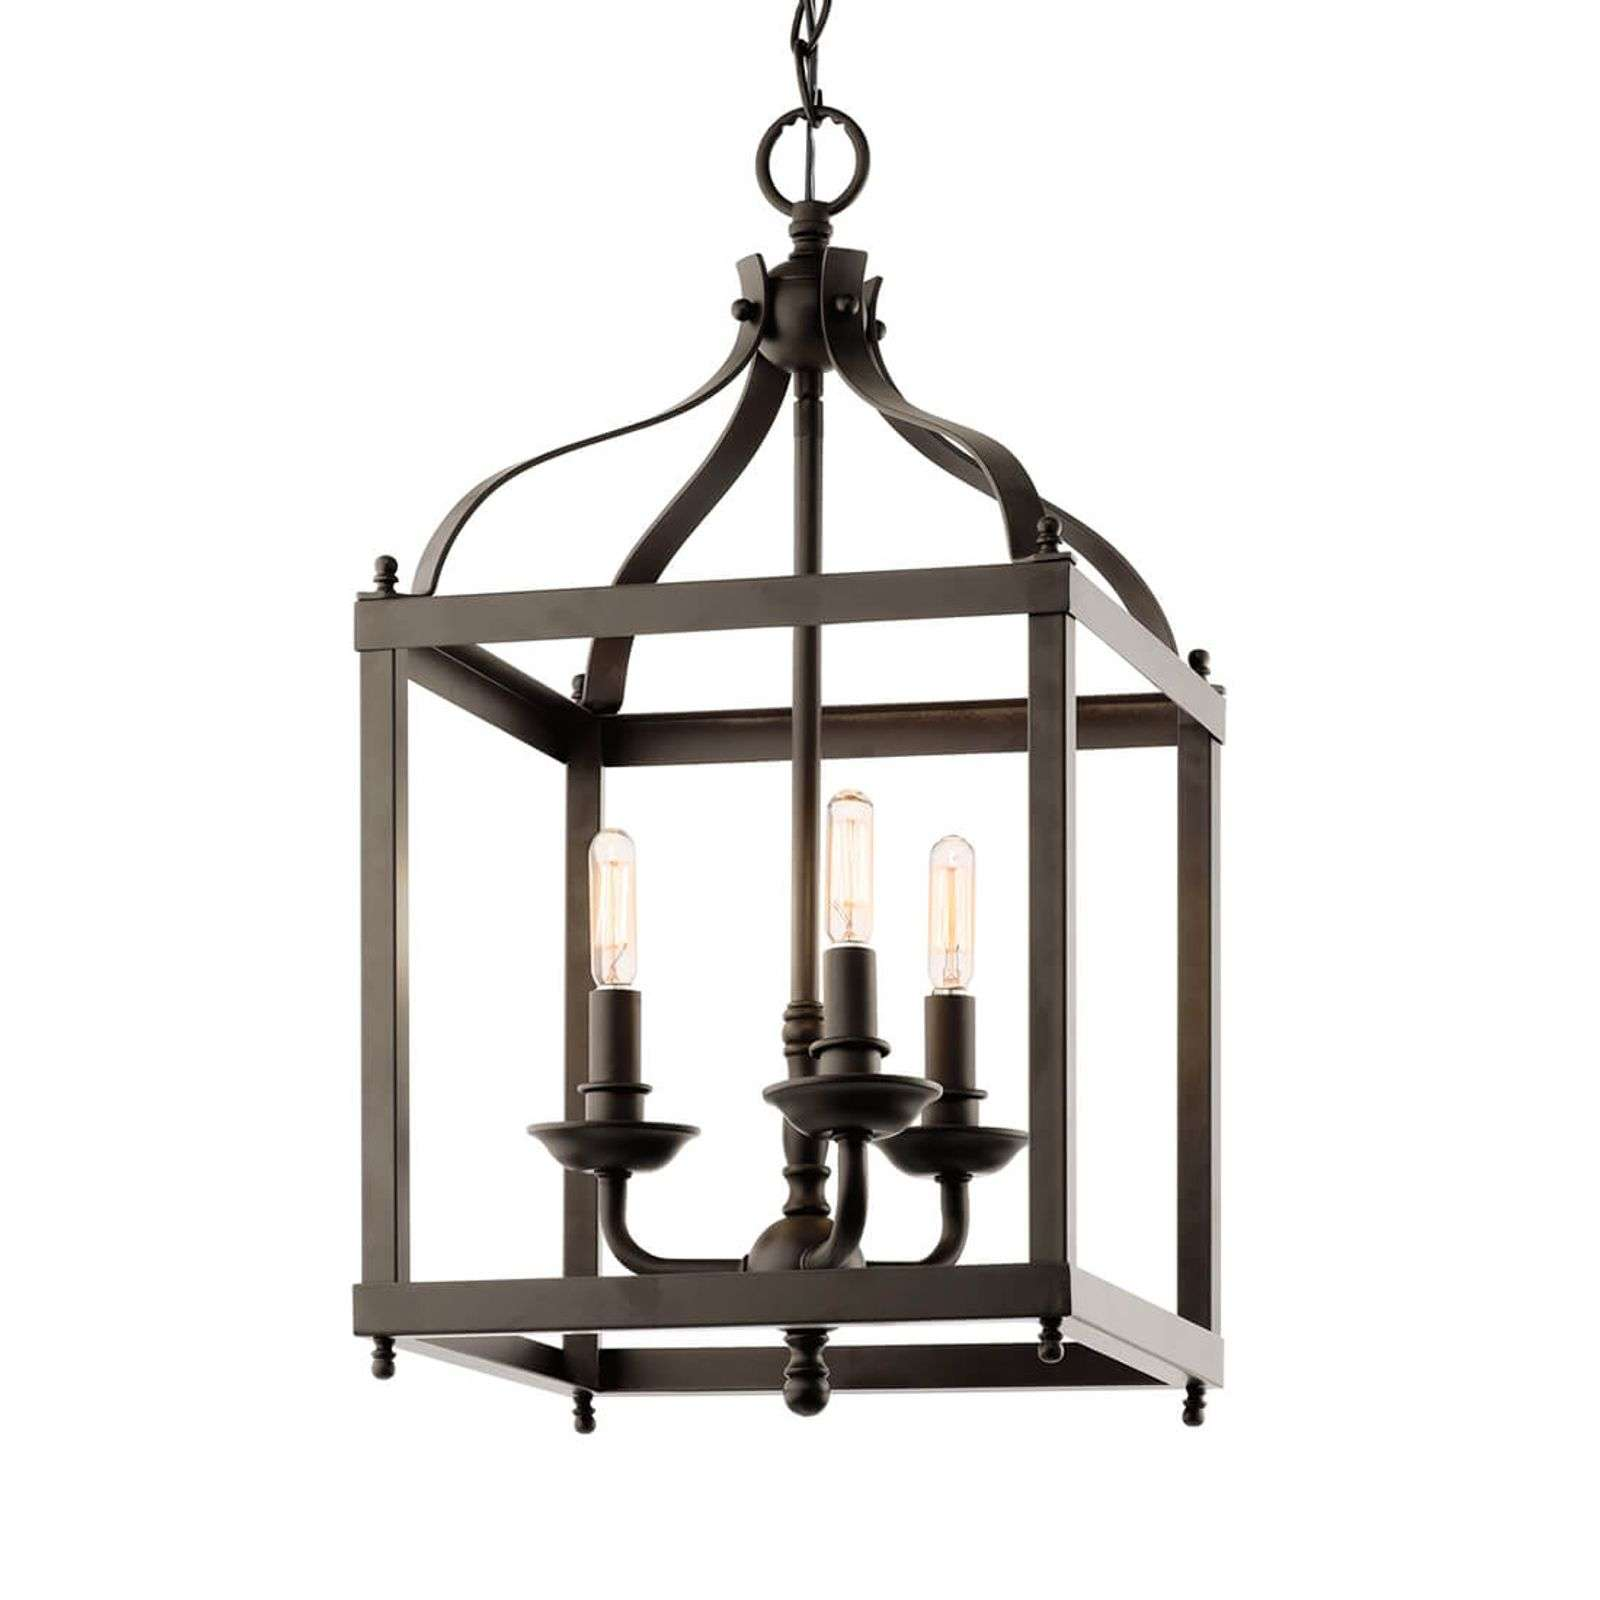 Suspension Larkin couleur bronze à 3 lampes